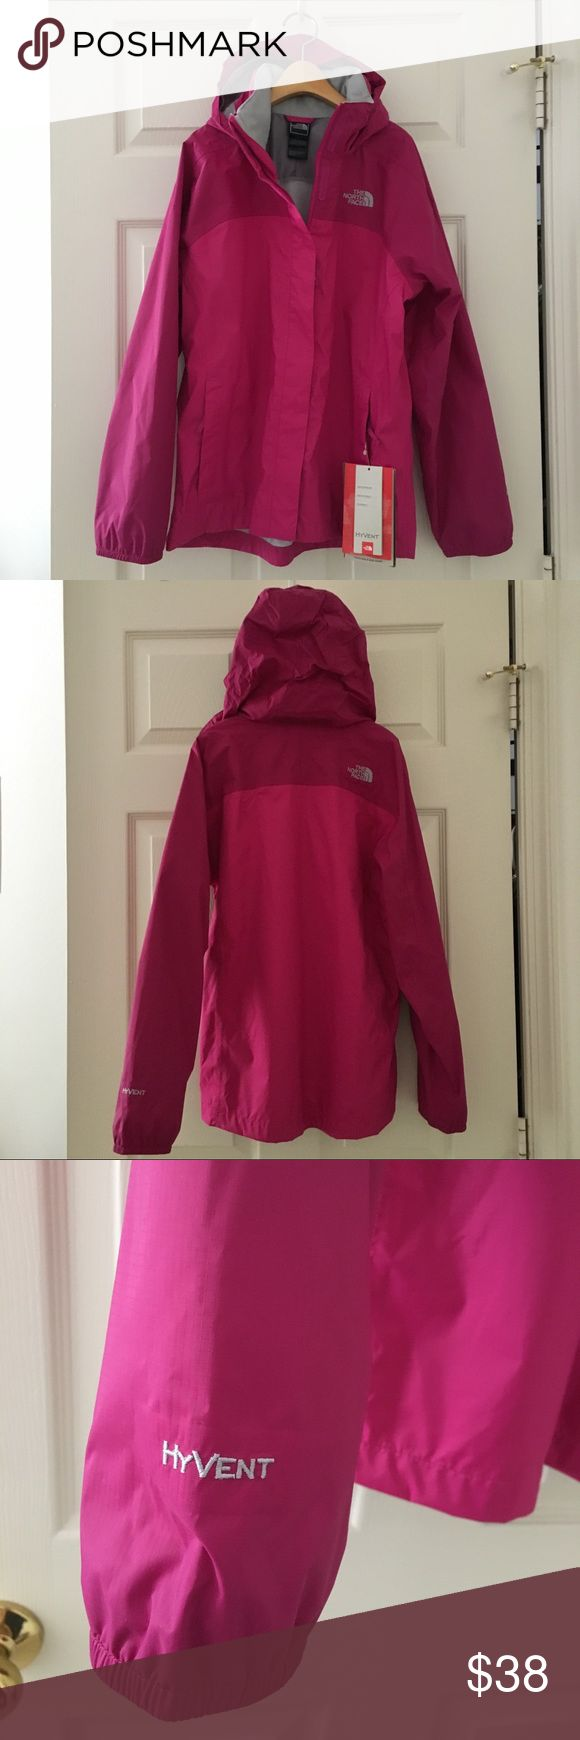 """The North Face NEW Girls Waterproof Resolve Jacket BRAND NEW The North Face Girls' Fuchsia Pink waterproof hooded Resolve jacket.  The hood can be folded and """"hidden"""" inside the collar. The jacket has 2 zip hand pockets. Interior mesh lining. Lightweight. Machine washable.  HyVent technology - Waterproof, Breathable, Durable  Size: Youth Girl's LARGE (14/16) The North Face Jackets & Coats"""